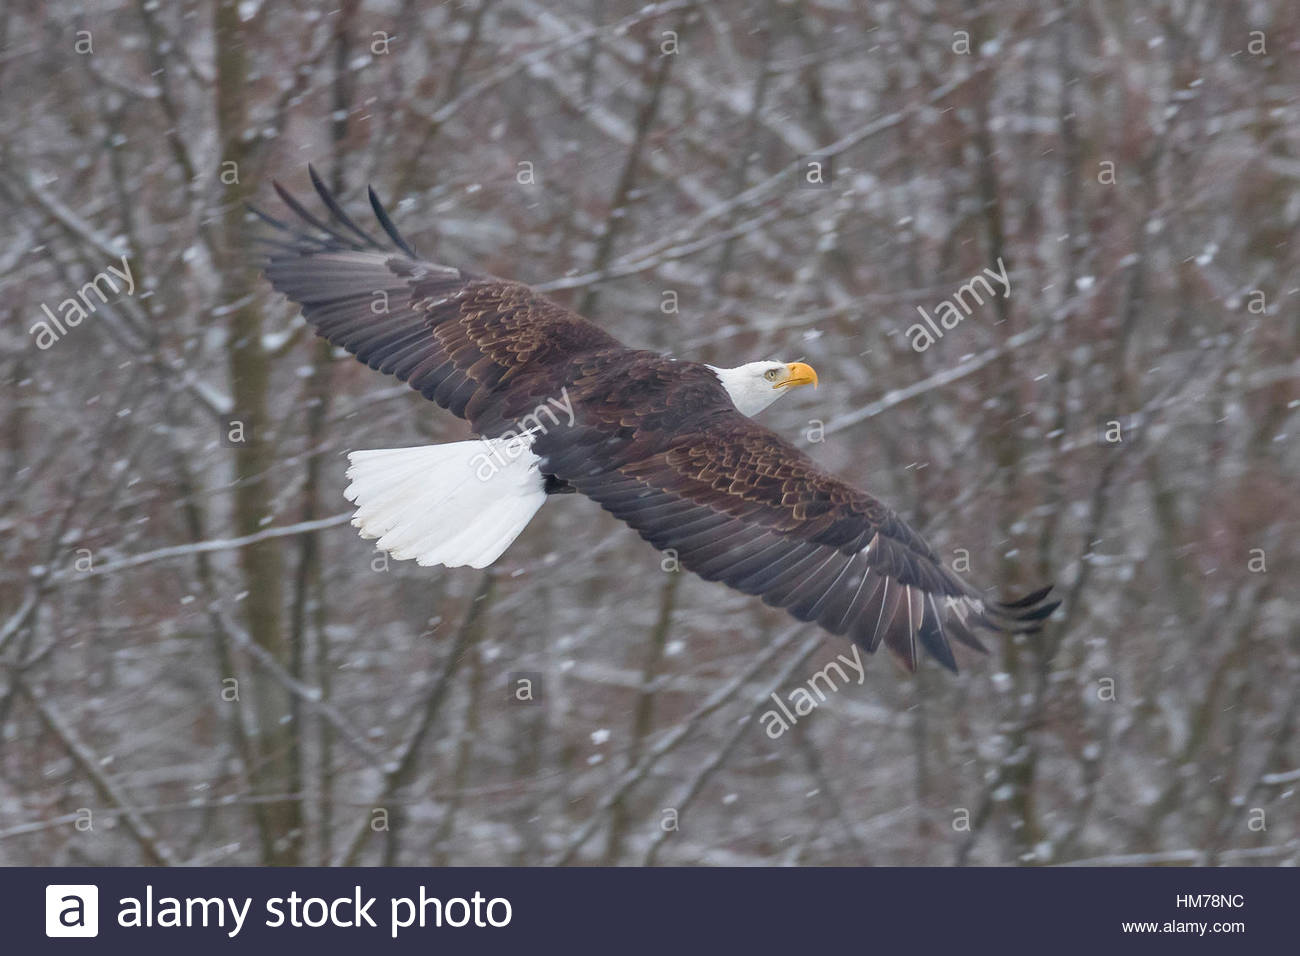 An adult bald eagle (Haliaeetus leucocephalus) flies over the Nooksack River near Welcome, Washington, during a - Stock Image